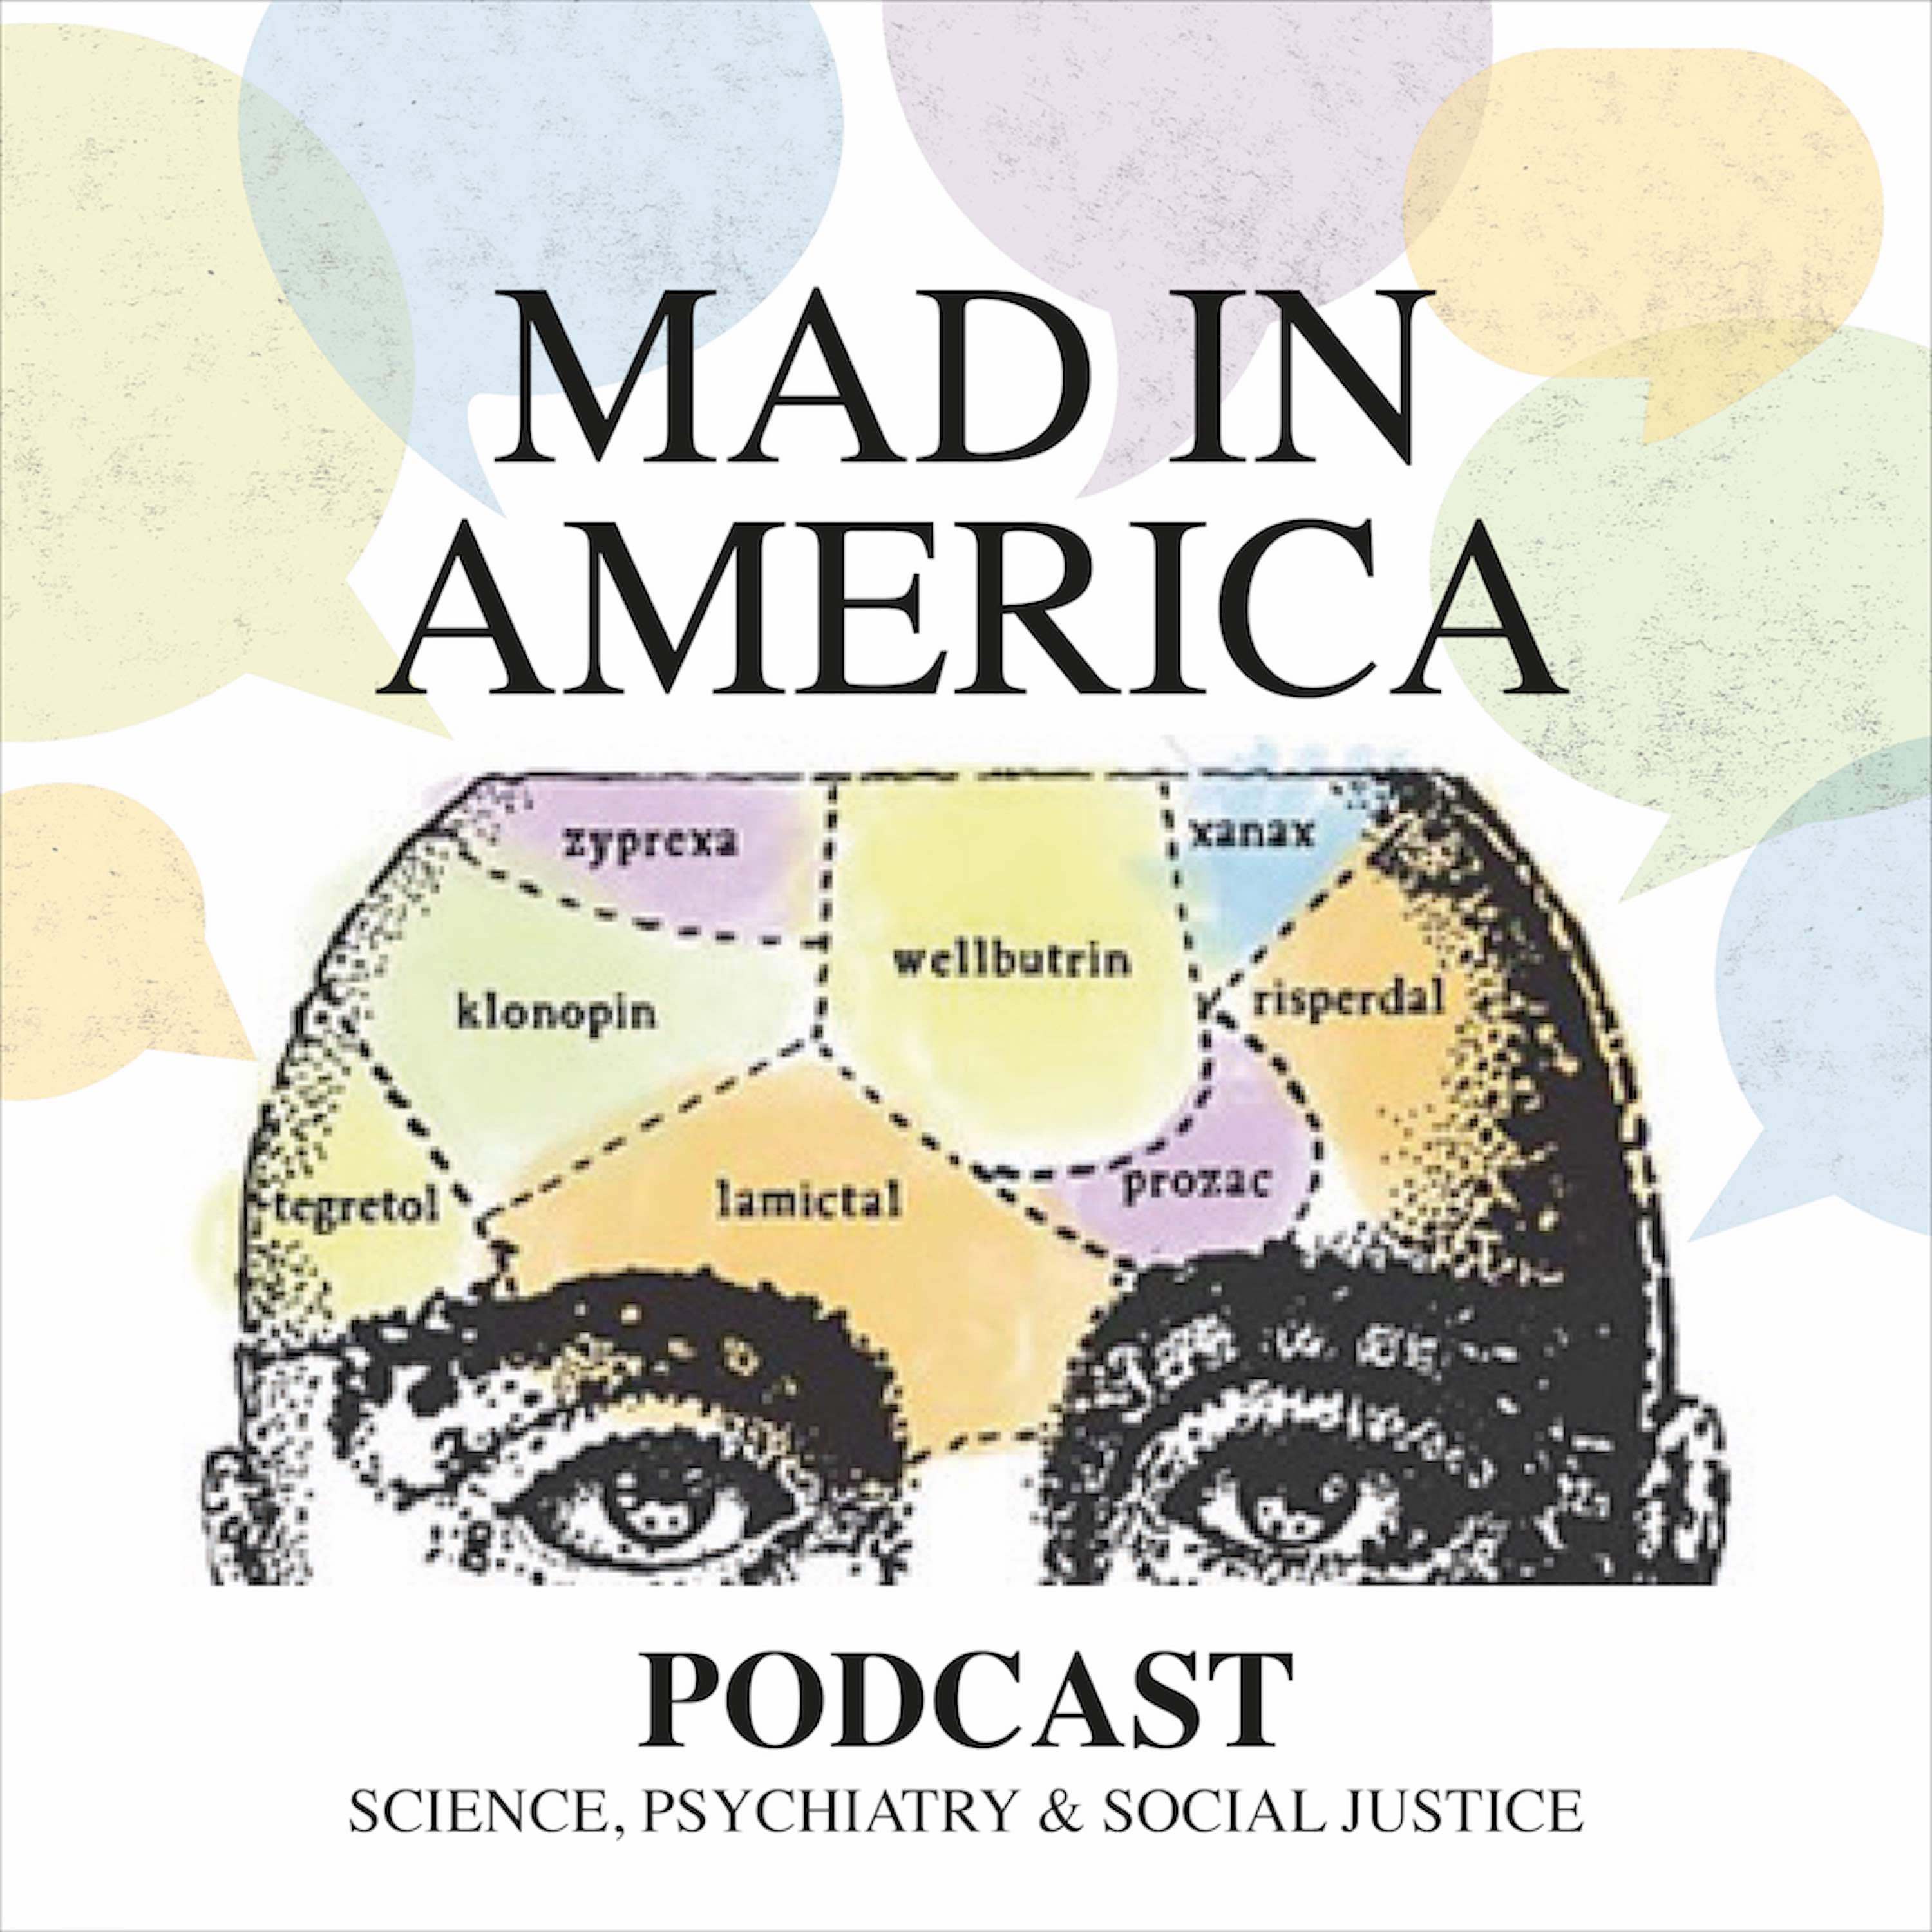 Mad in America: Rethinking Mental Health - Michael Fontaine - What the Ancient World can Teach us About Emotional Distress